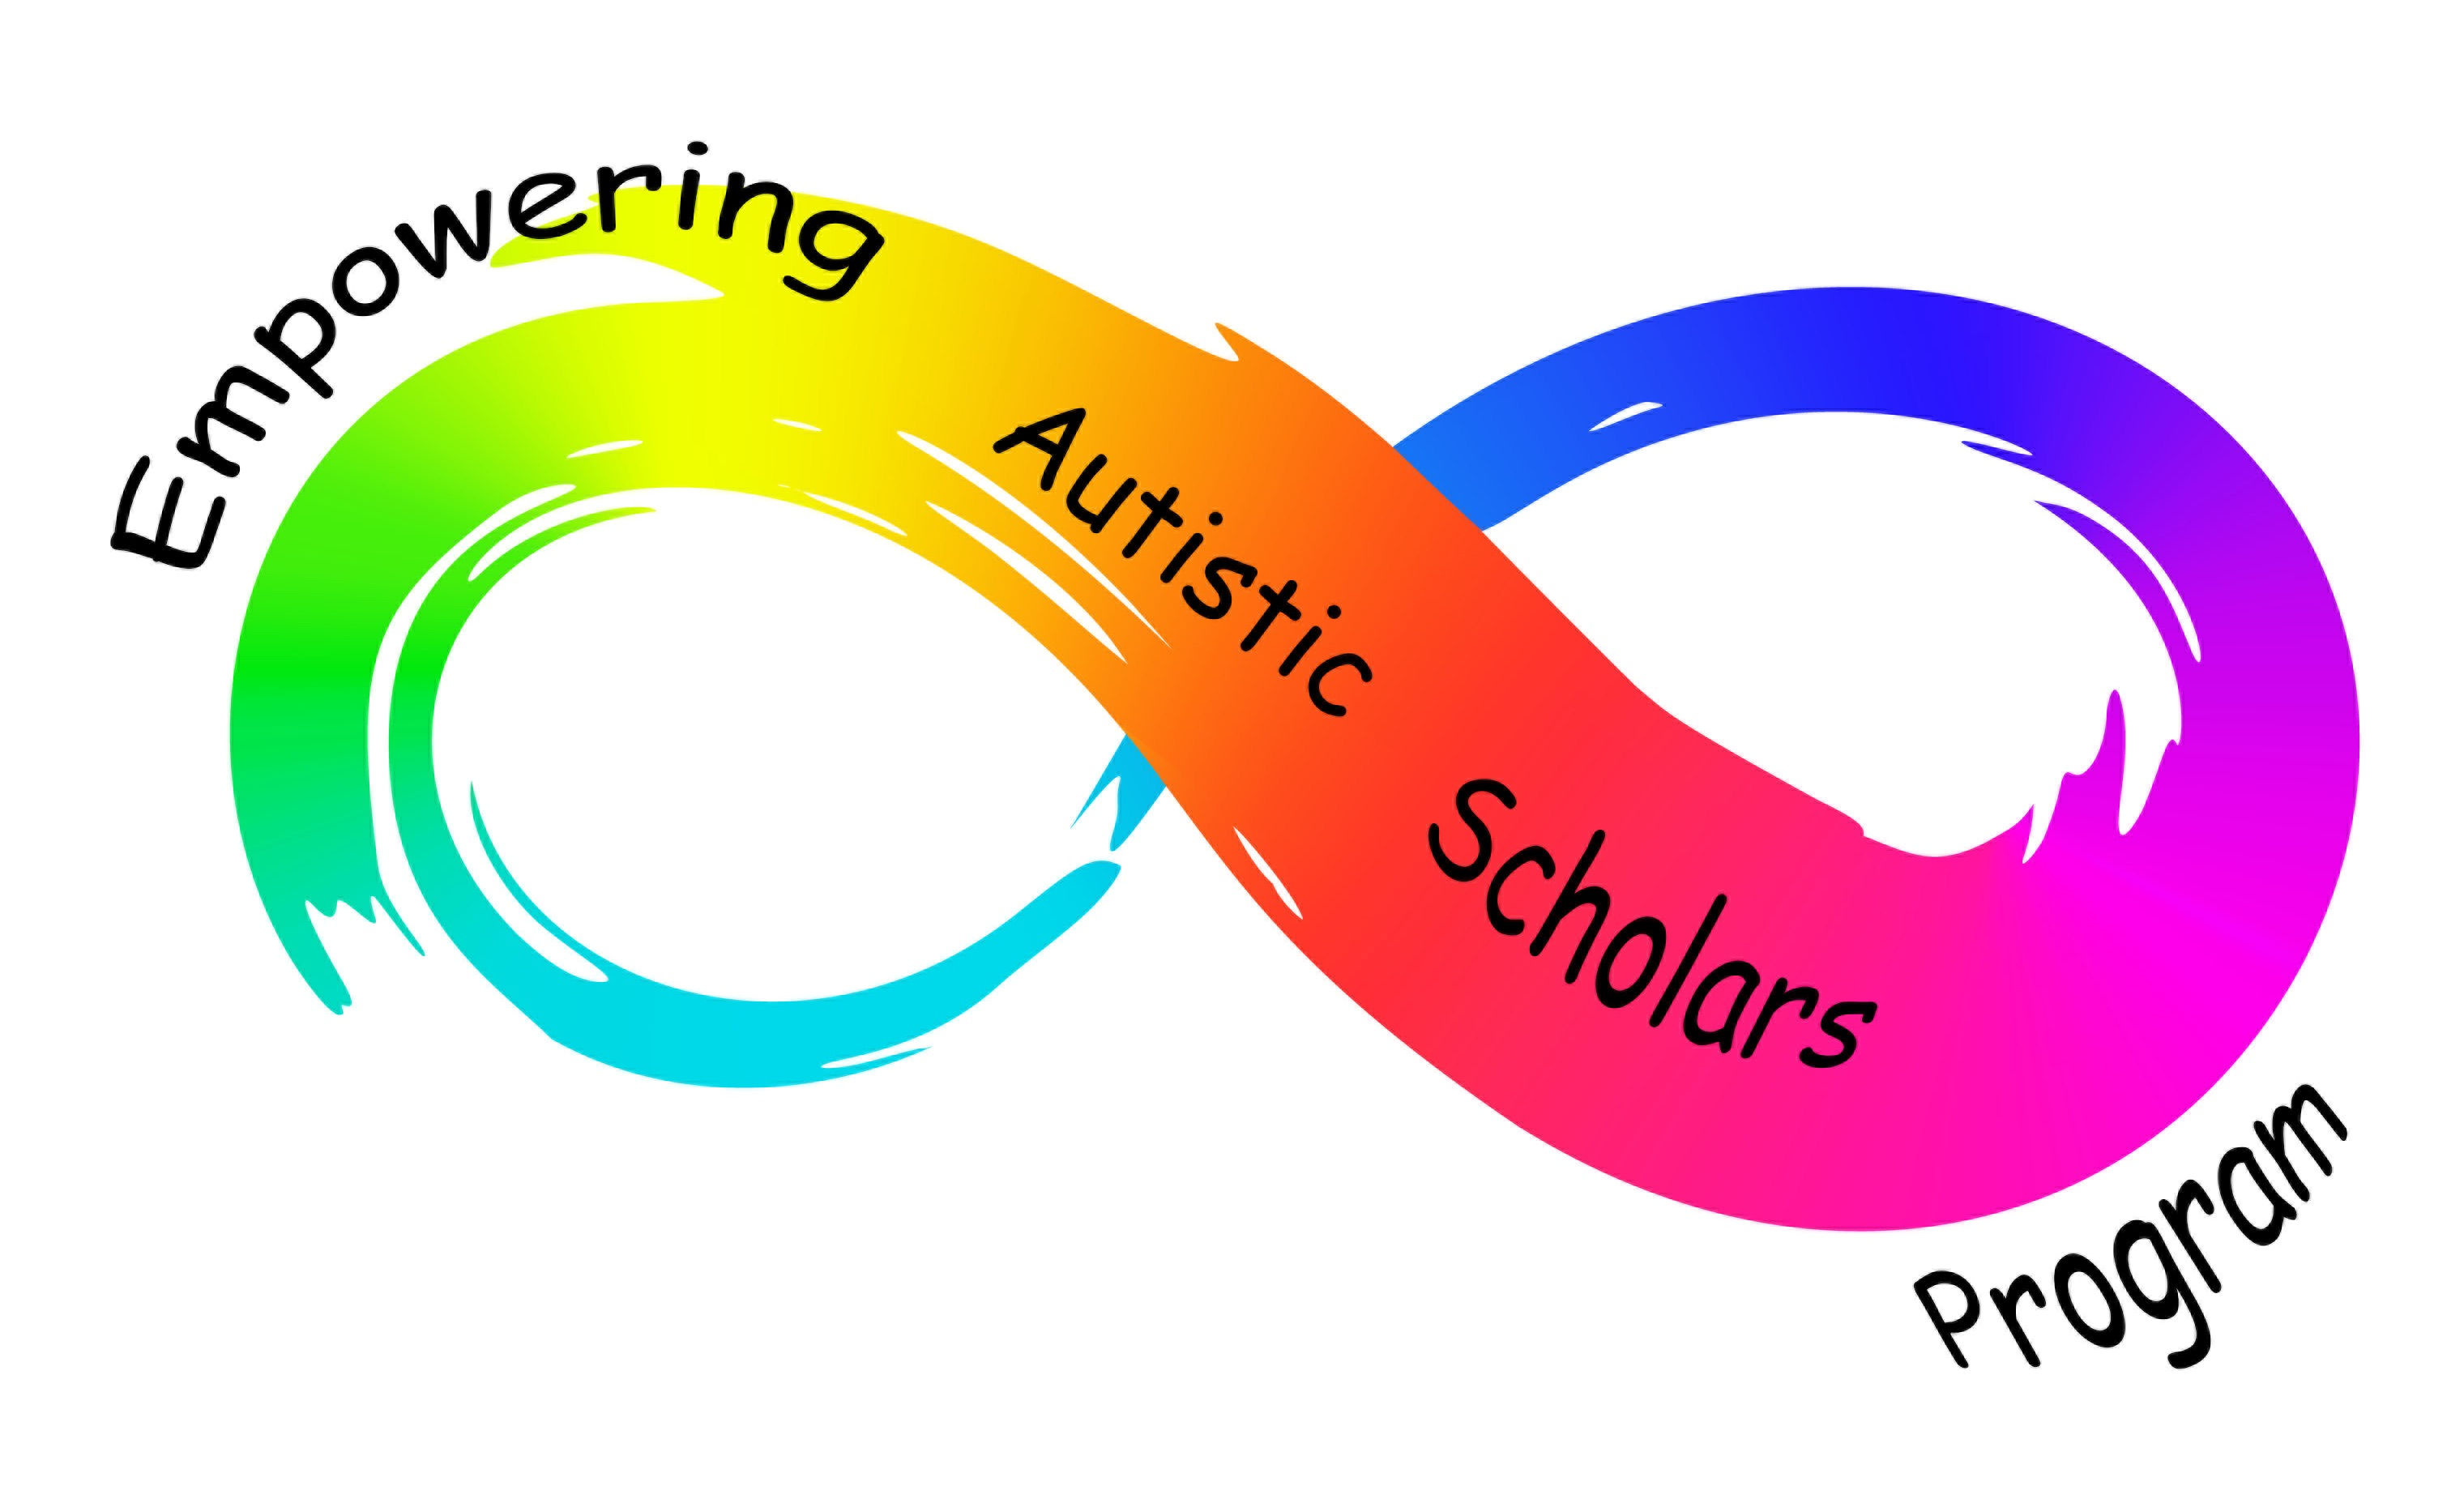 Rainbow infinity symbol in brushstroke style with black text overlaid that says Empowering Autistic Scholars Program